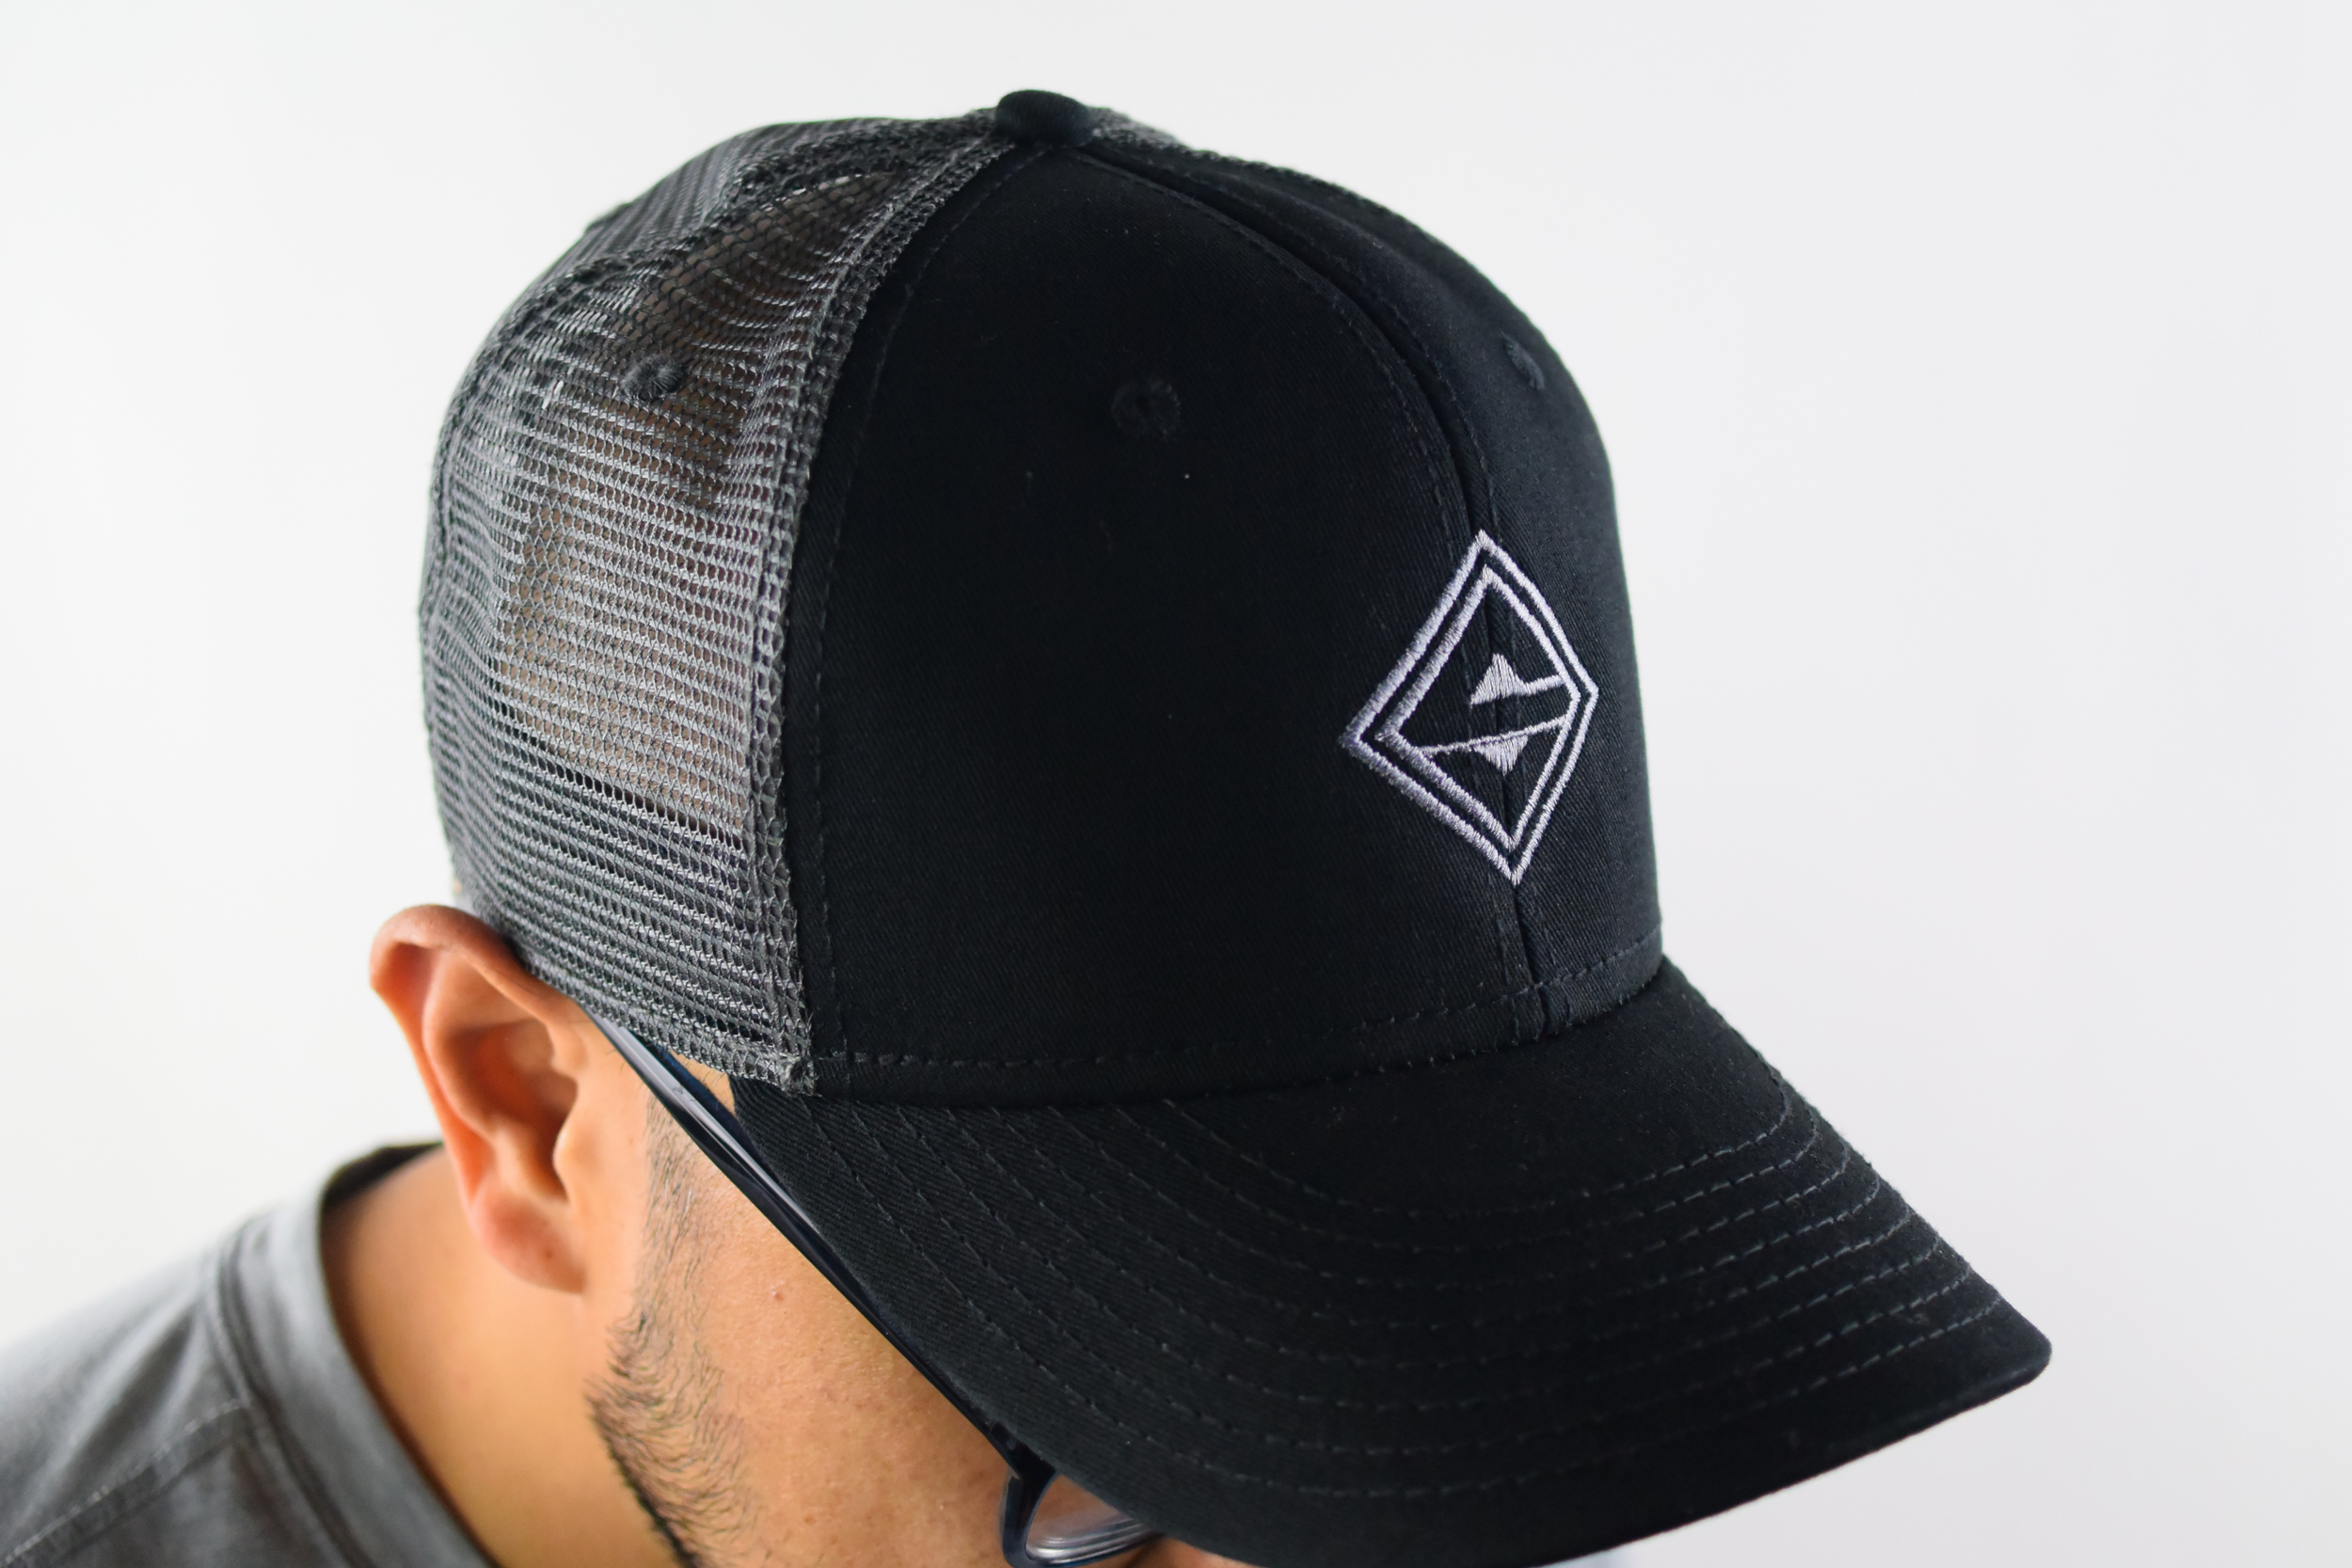 SV Embroidered Trucker Hats are in! Limited quantities, get them while in stock. Hoodies and shirts should be in this week!